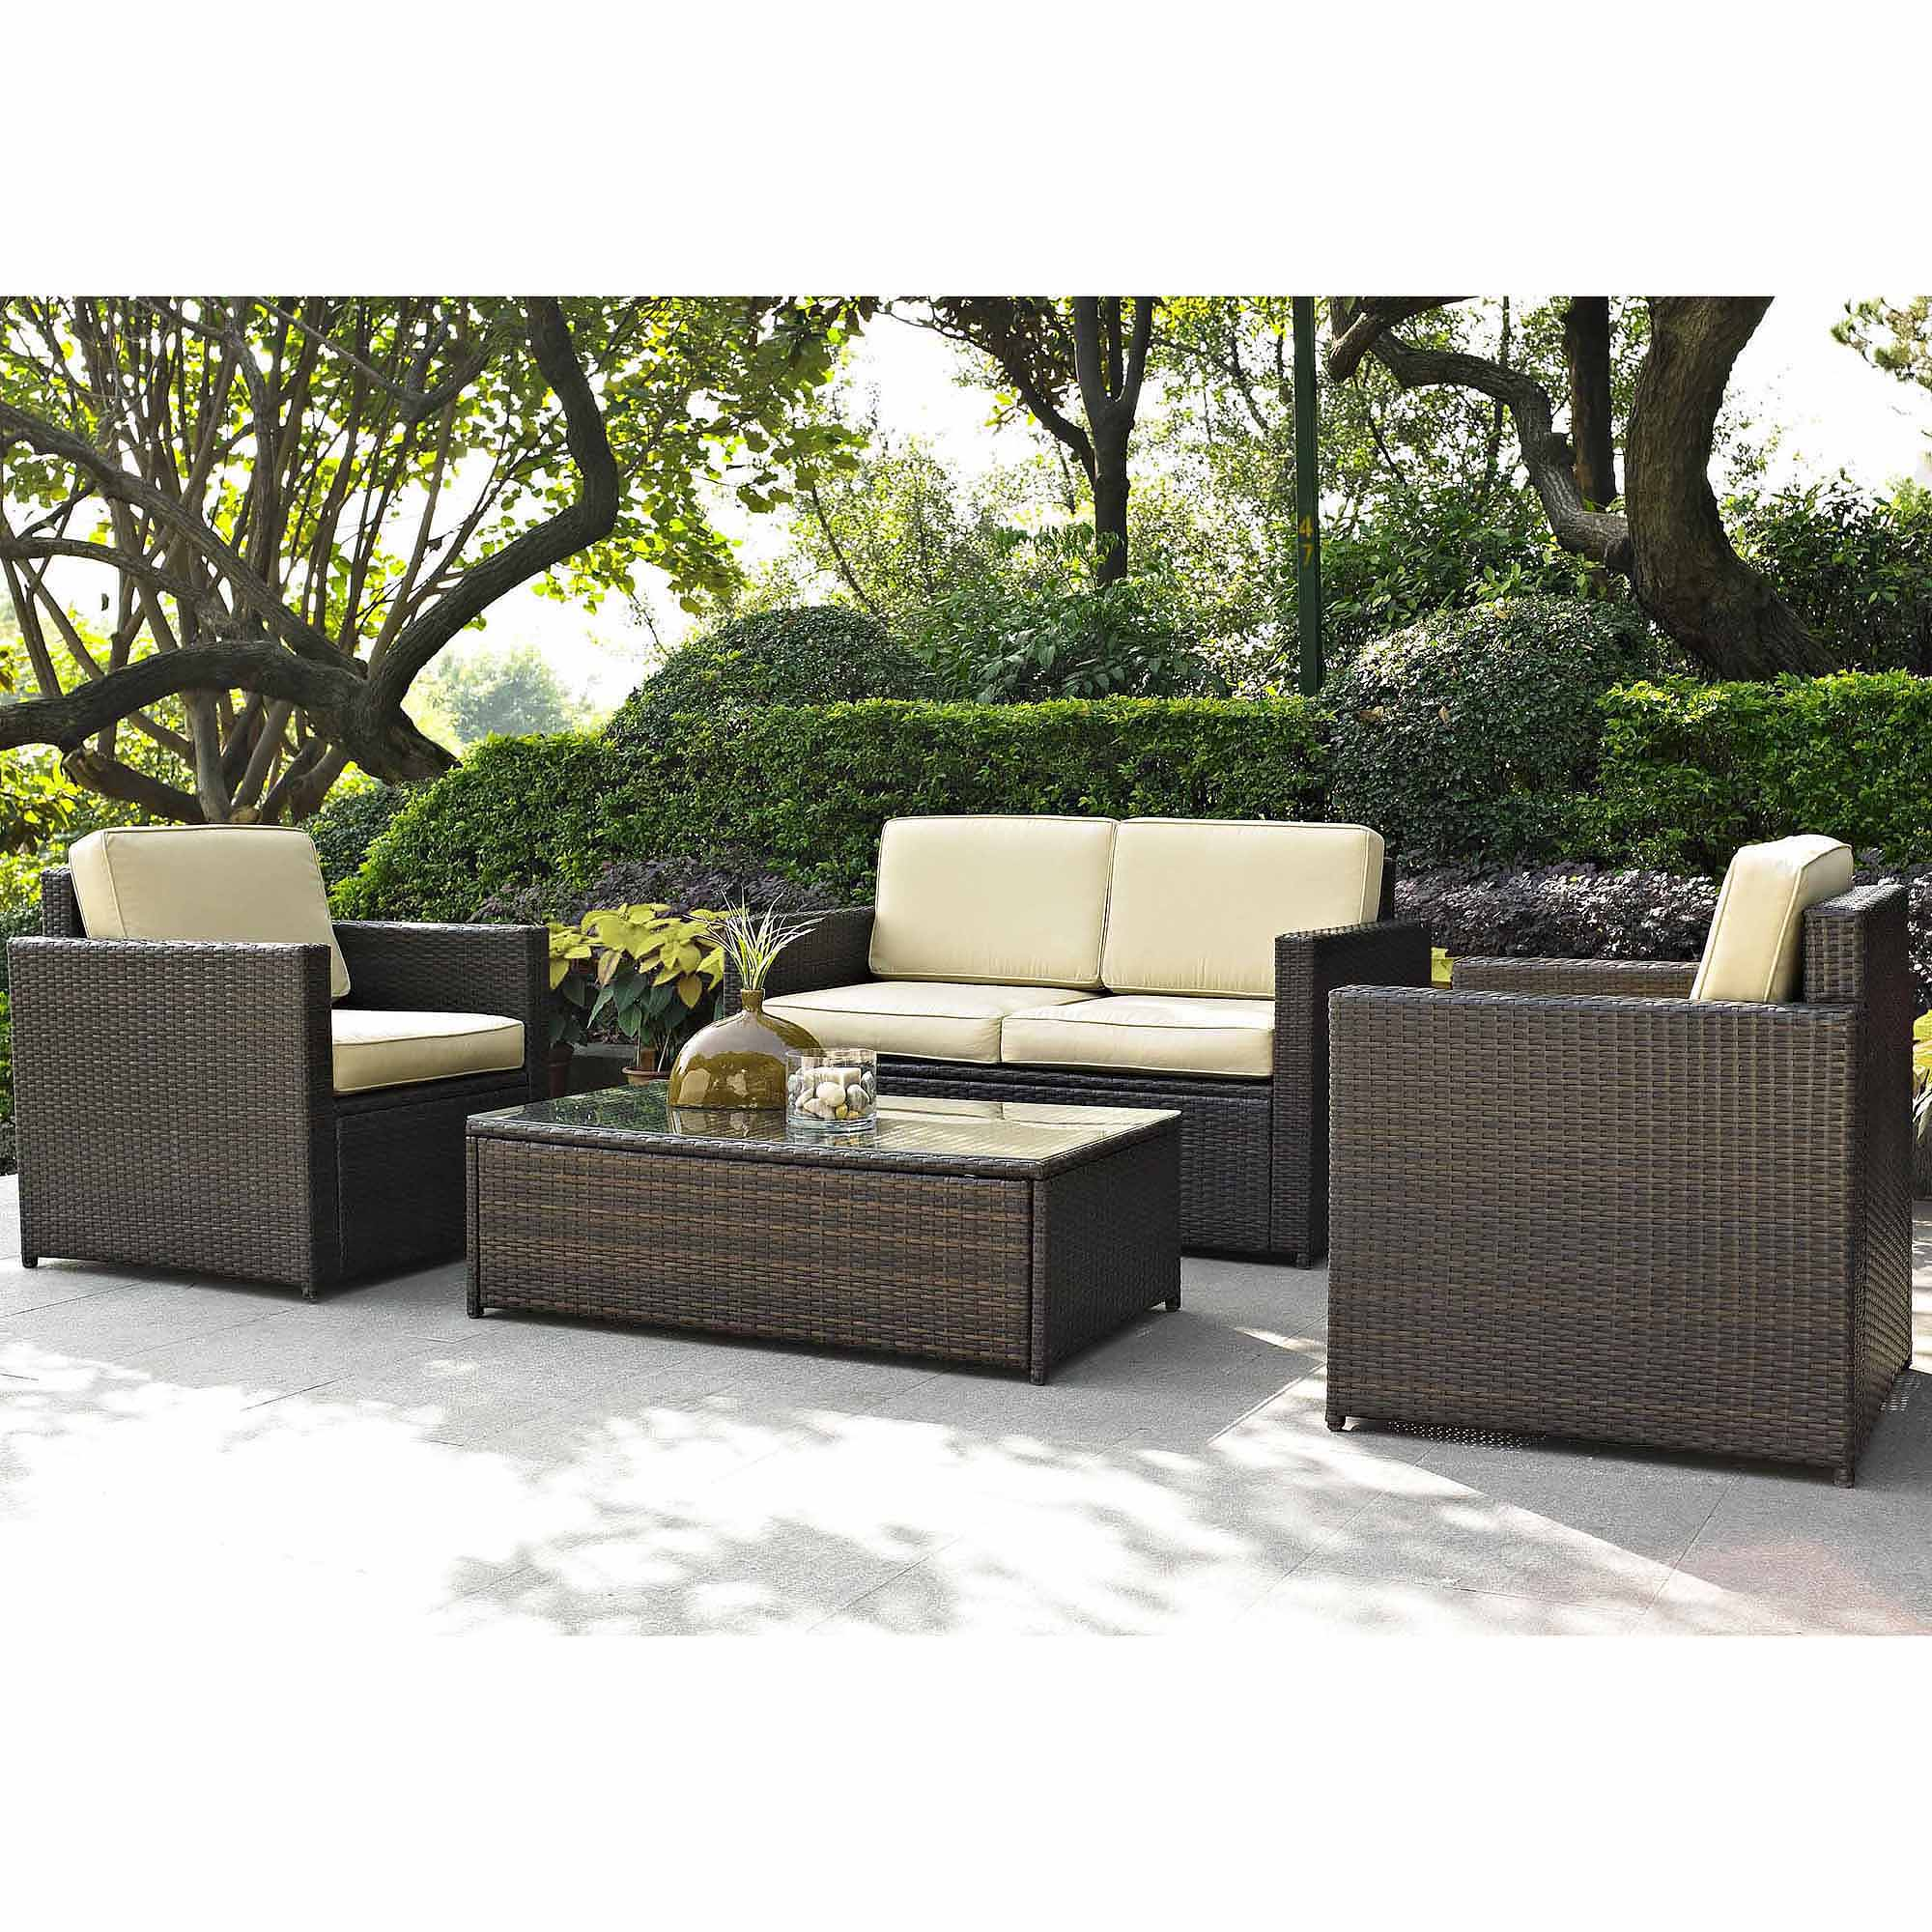 best choice products outdoor garden patio 4pc cushioned seat black wicker sofa furniture set walmartcom